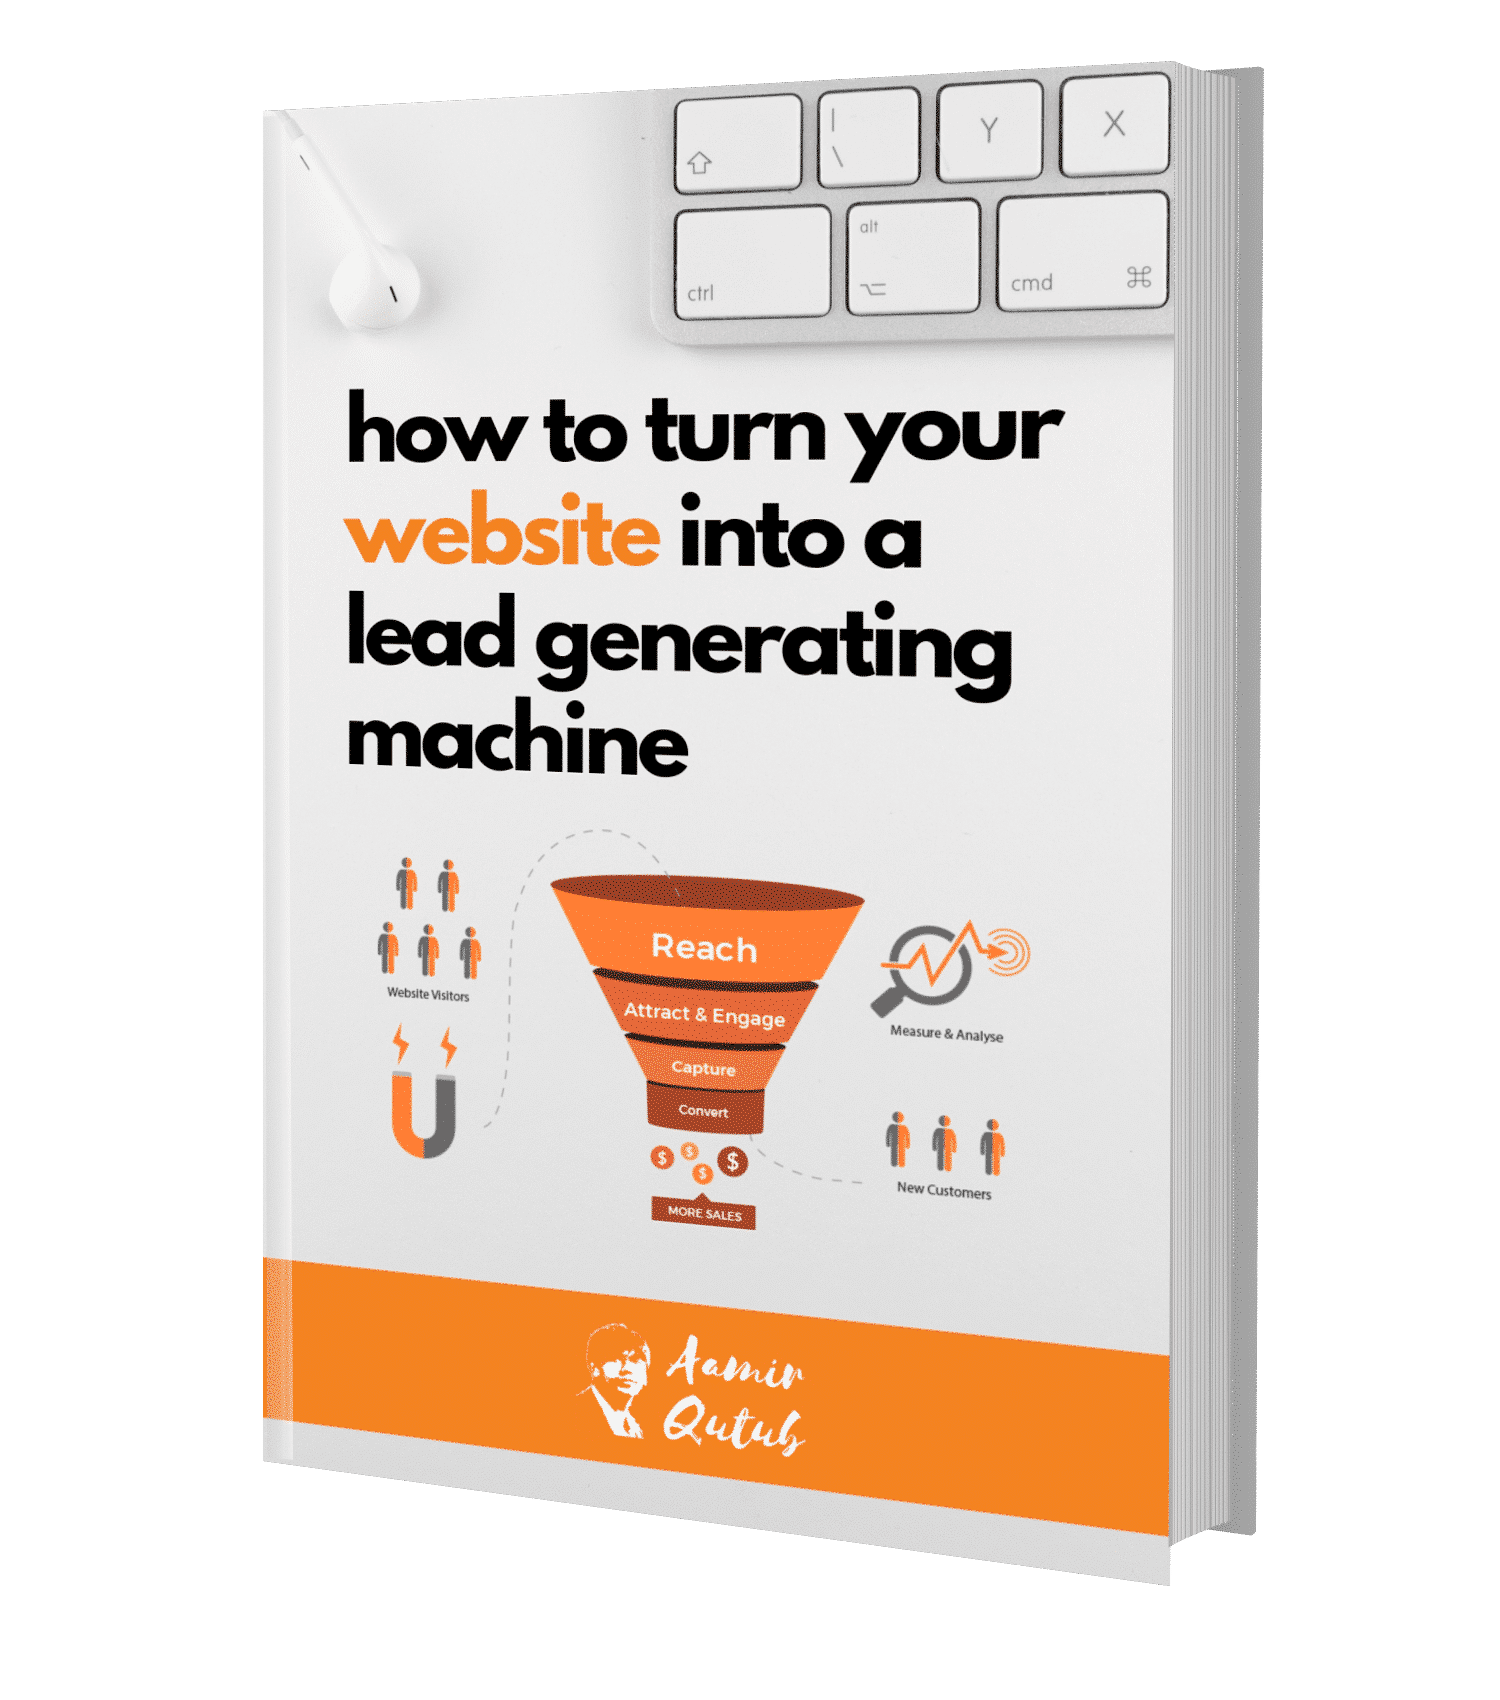 how to turn your website into a lead generating machine